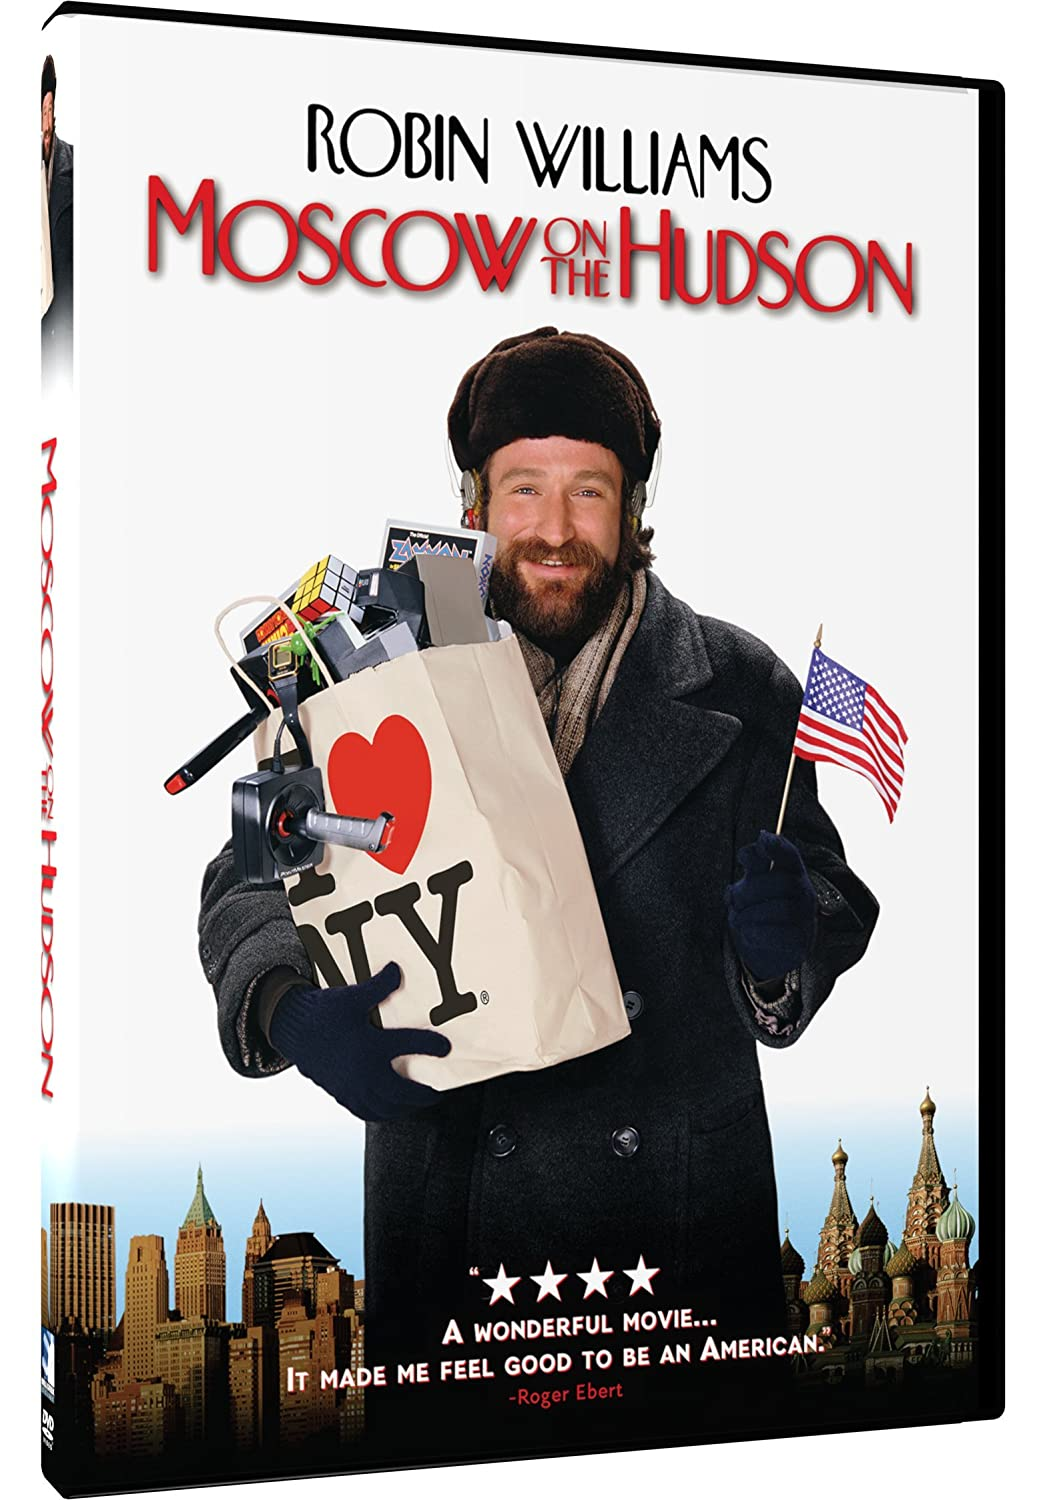 Image result for moscow on hudson cover magazine williams